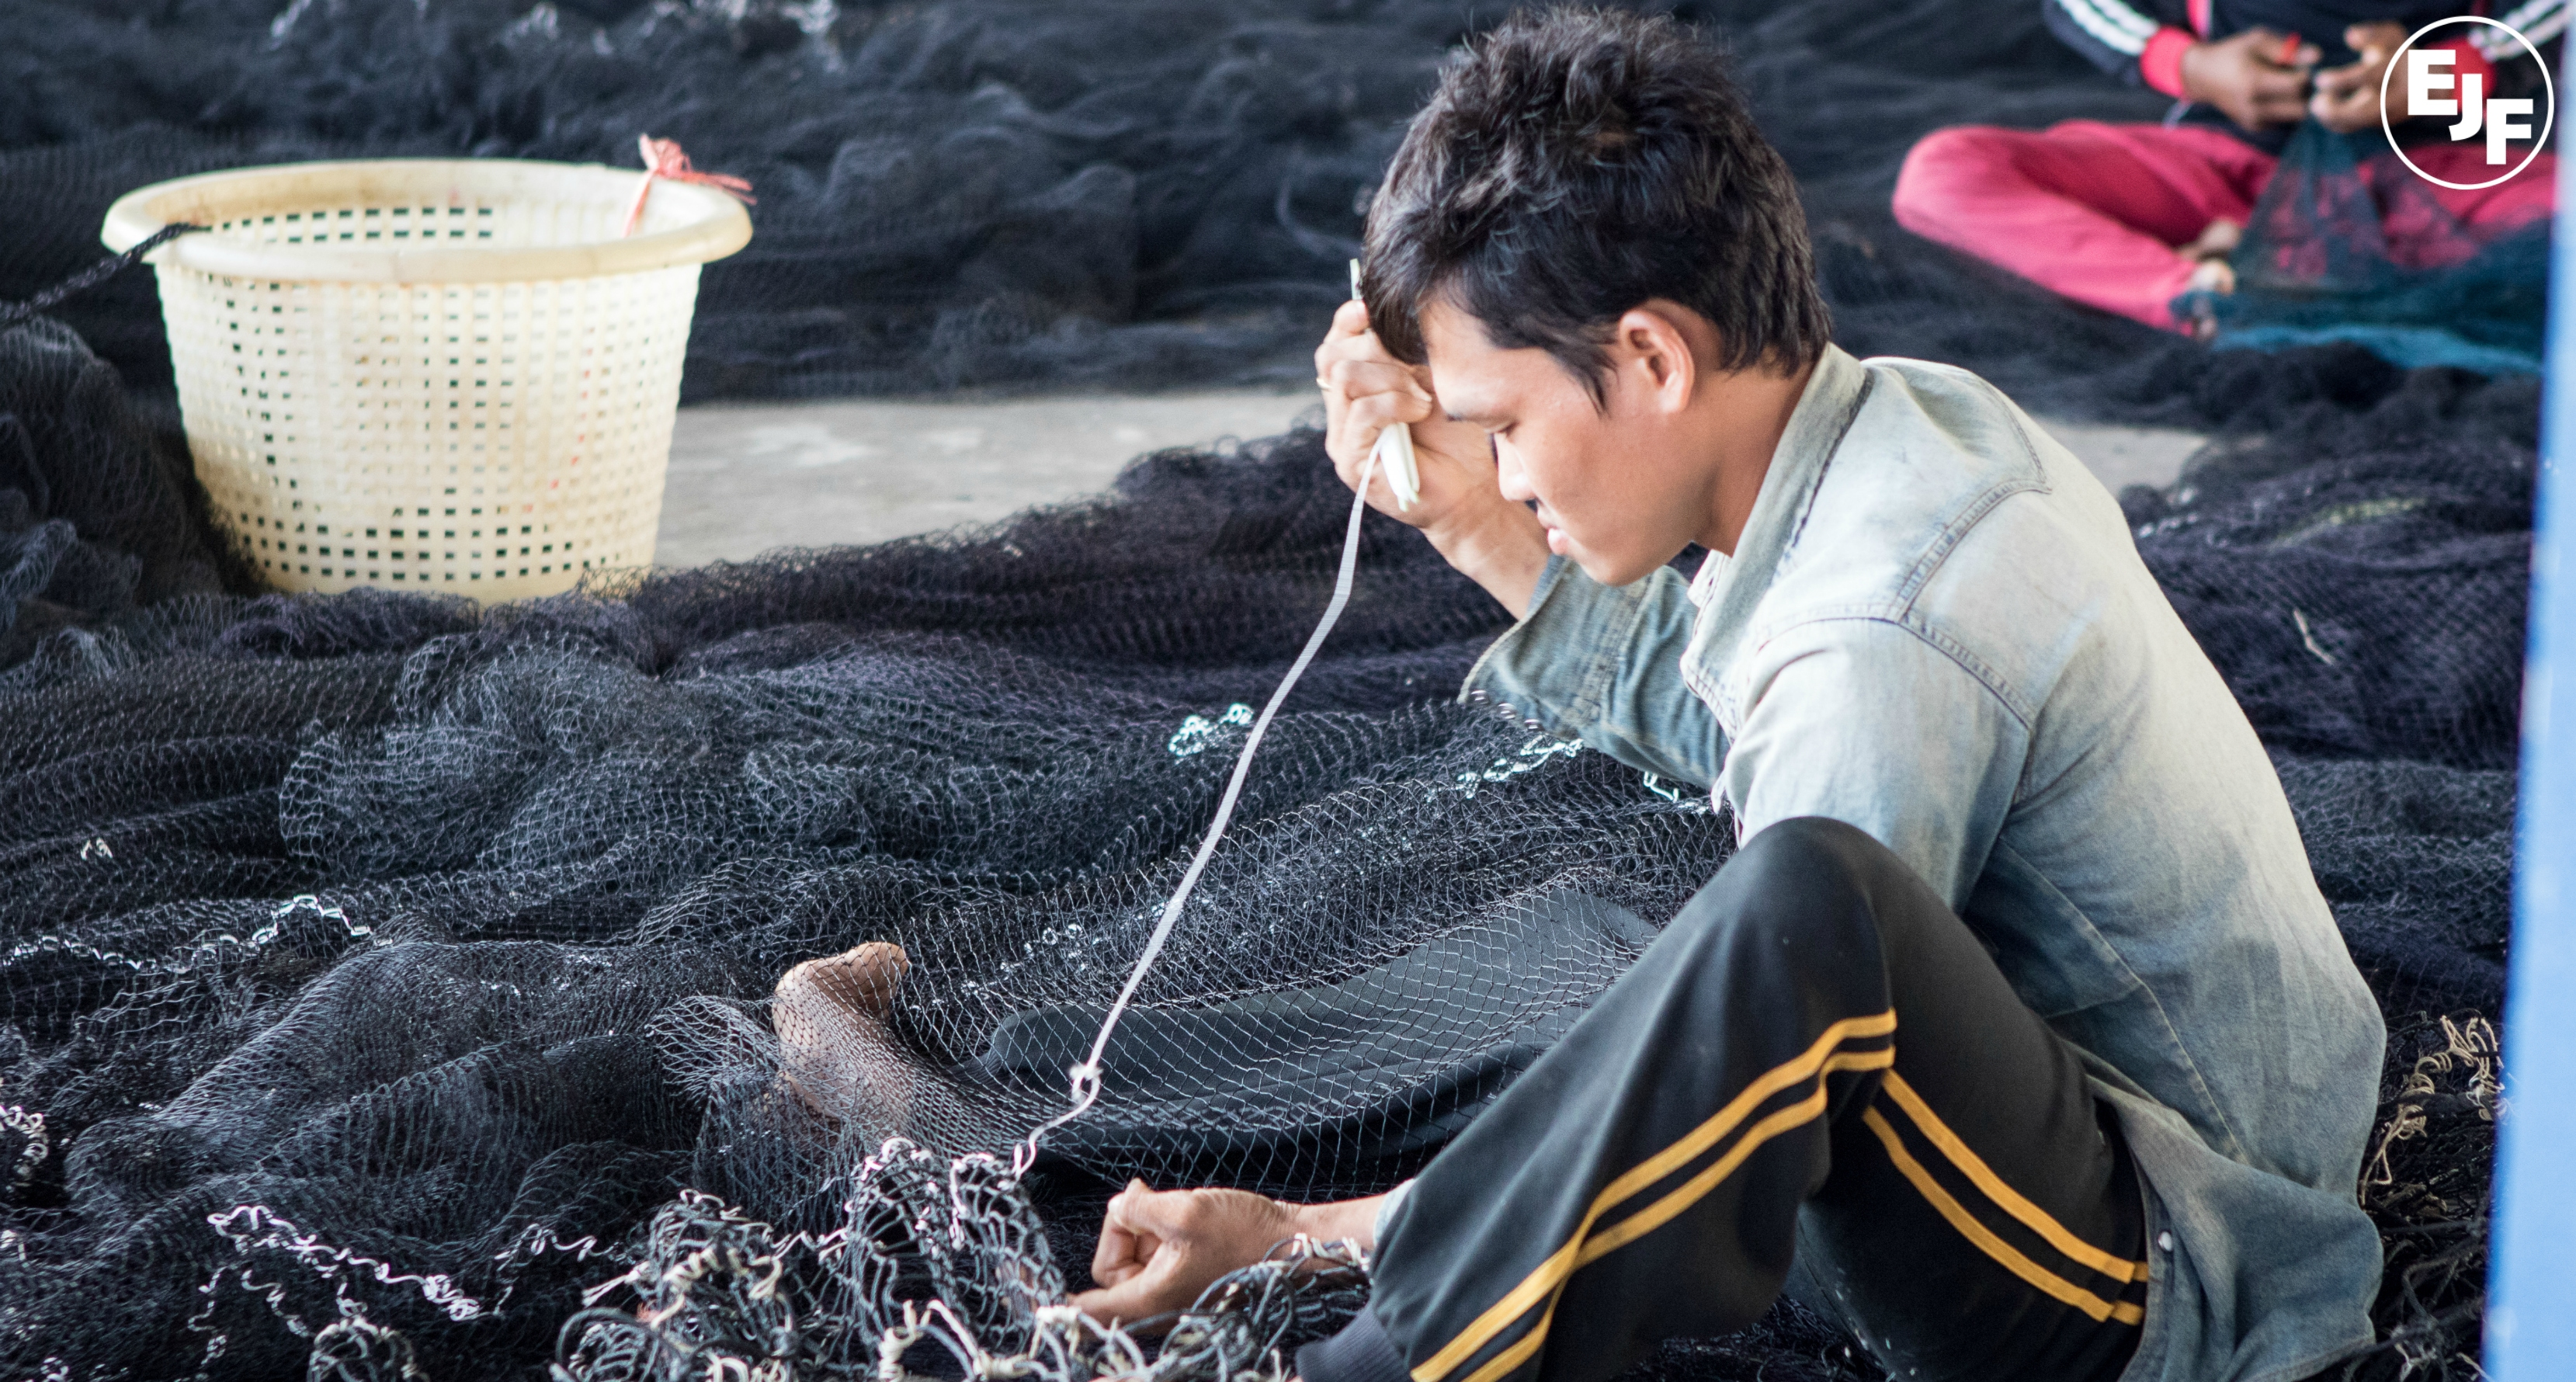 EJF briefs Ethical Trading Initiative on slavery in Thai fishing industry